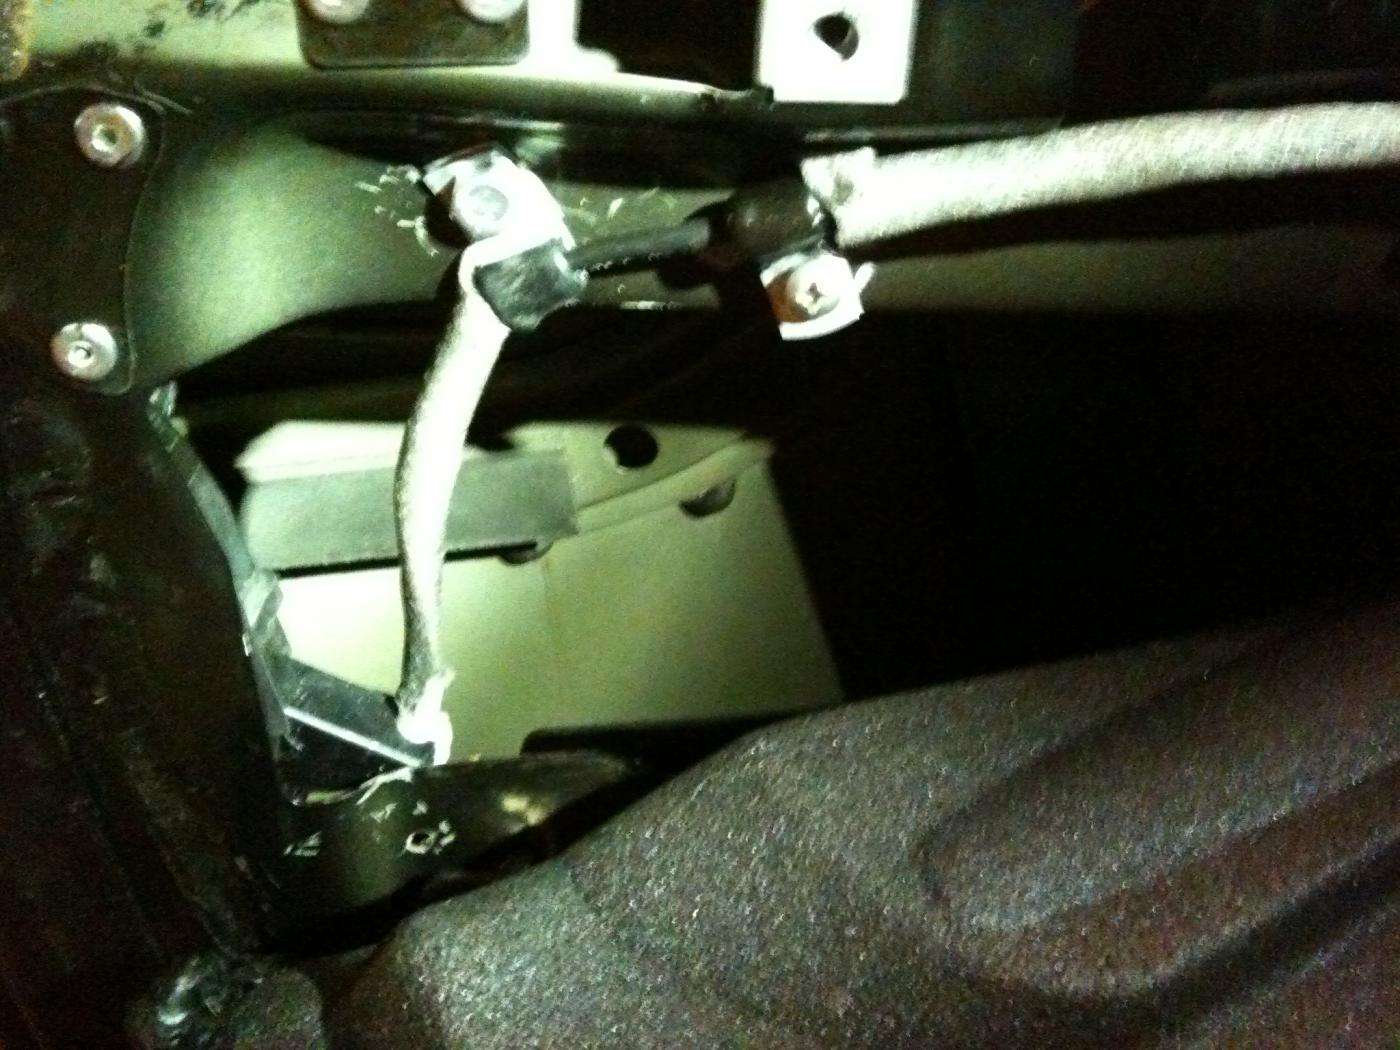 Drivers door won t open after changing handle carrier xoutpost com - Attached Images